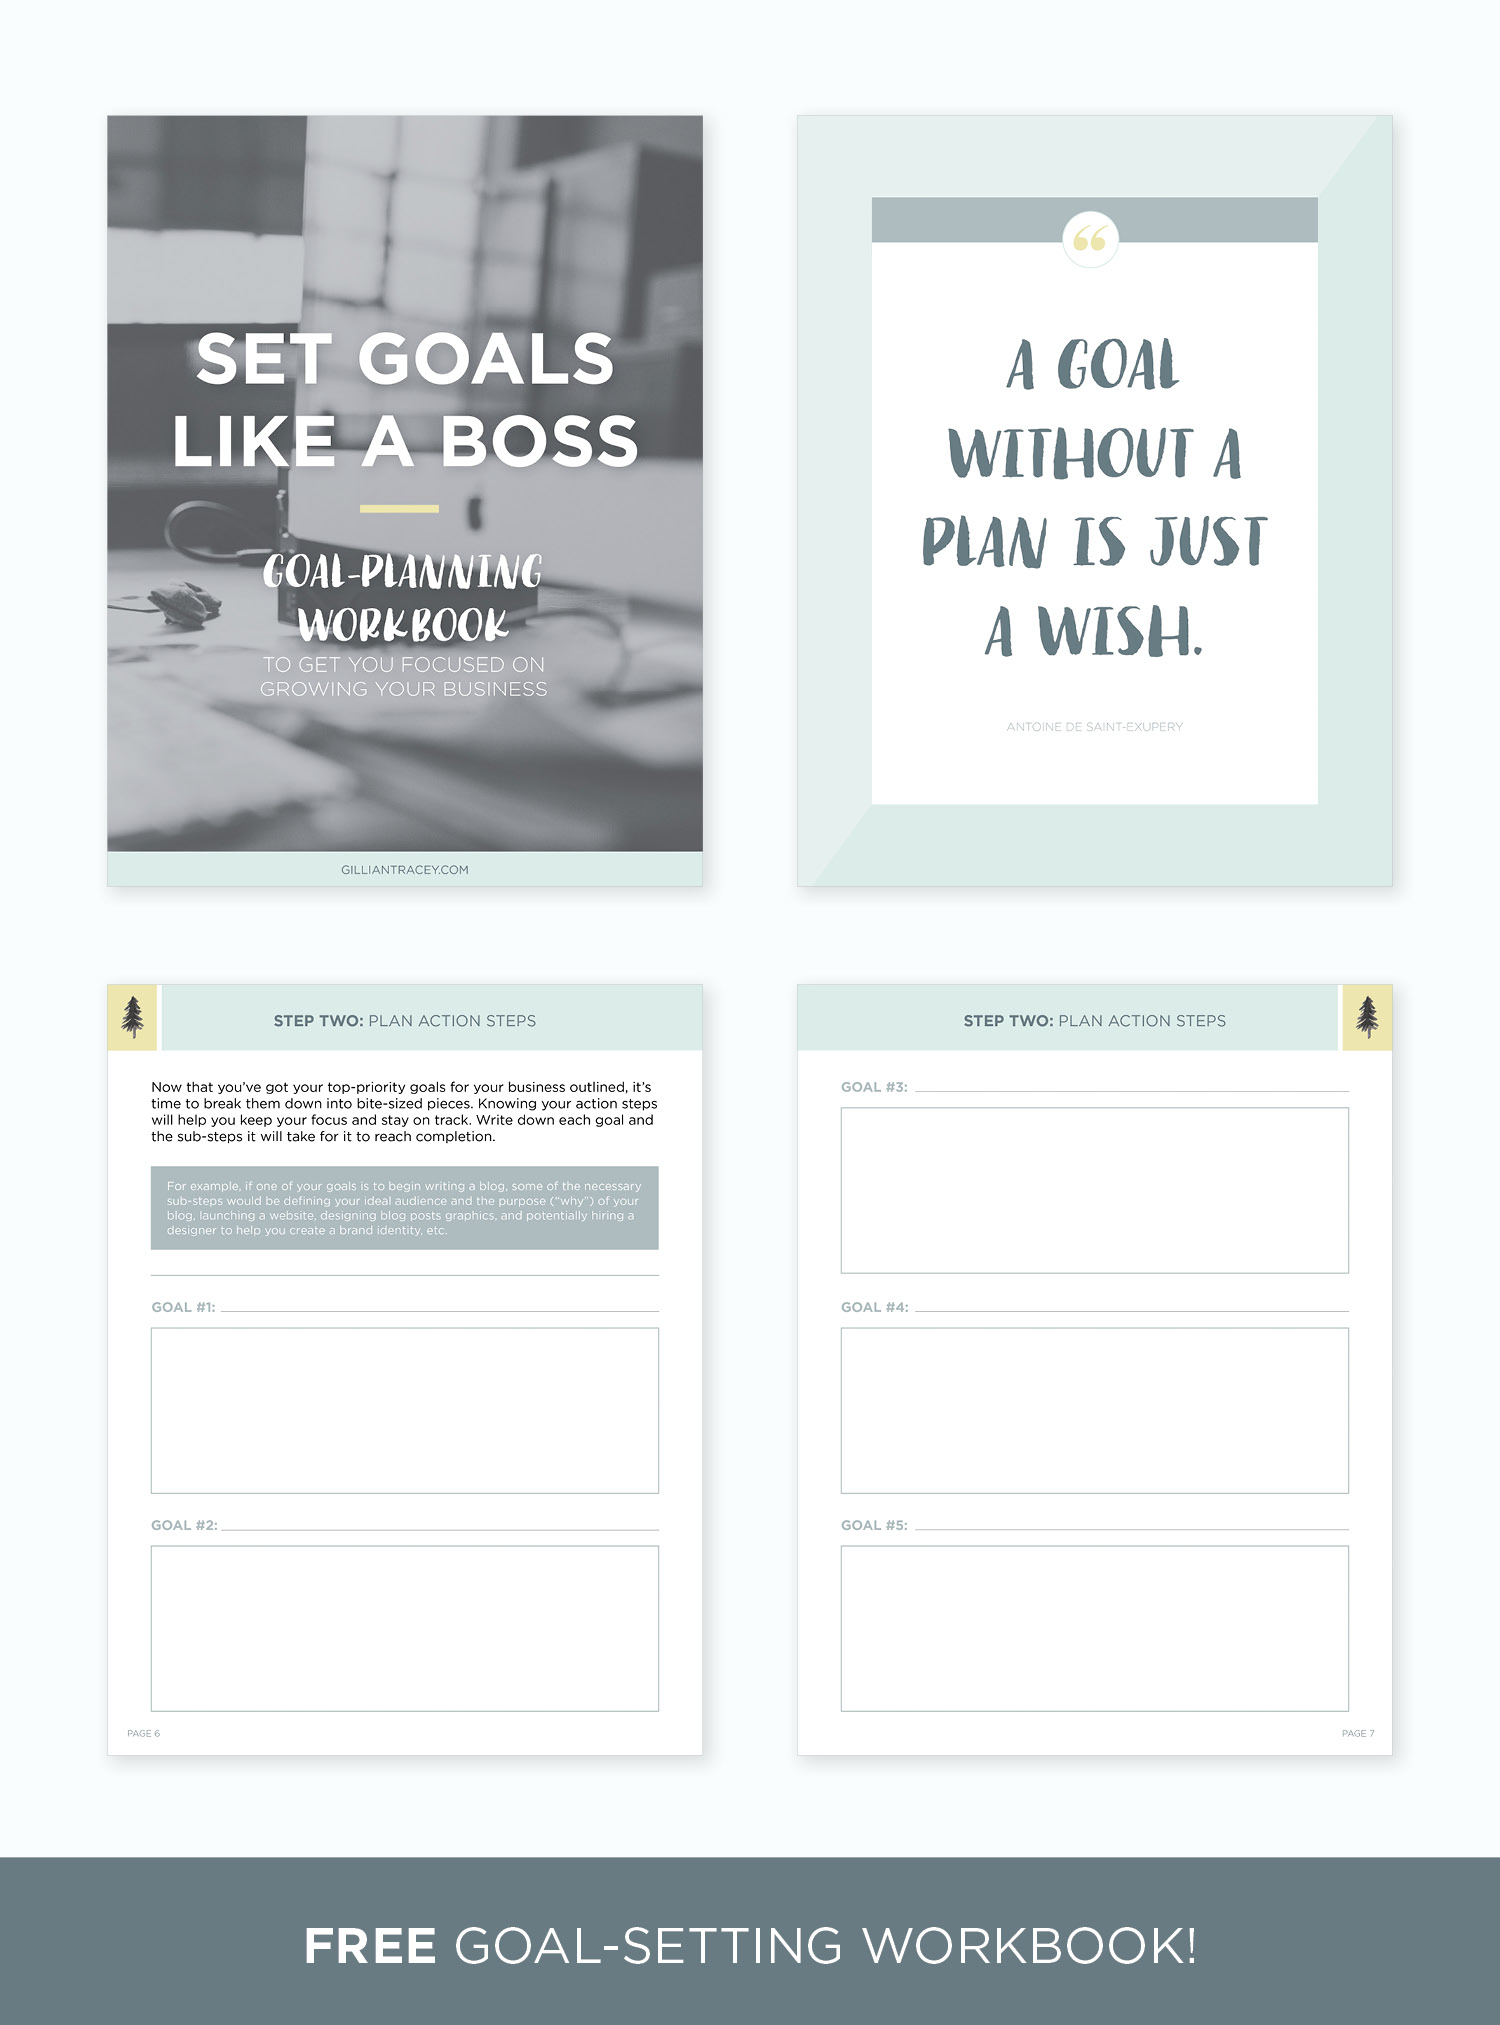 Set Goals Like a Boss: Goal-Planning Workbook by Gillian Tracey Design